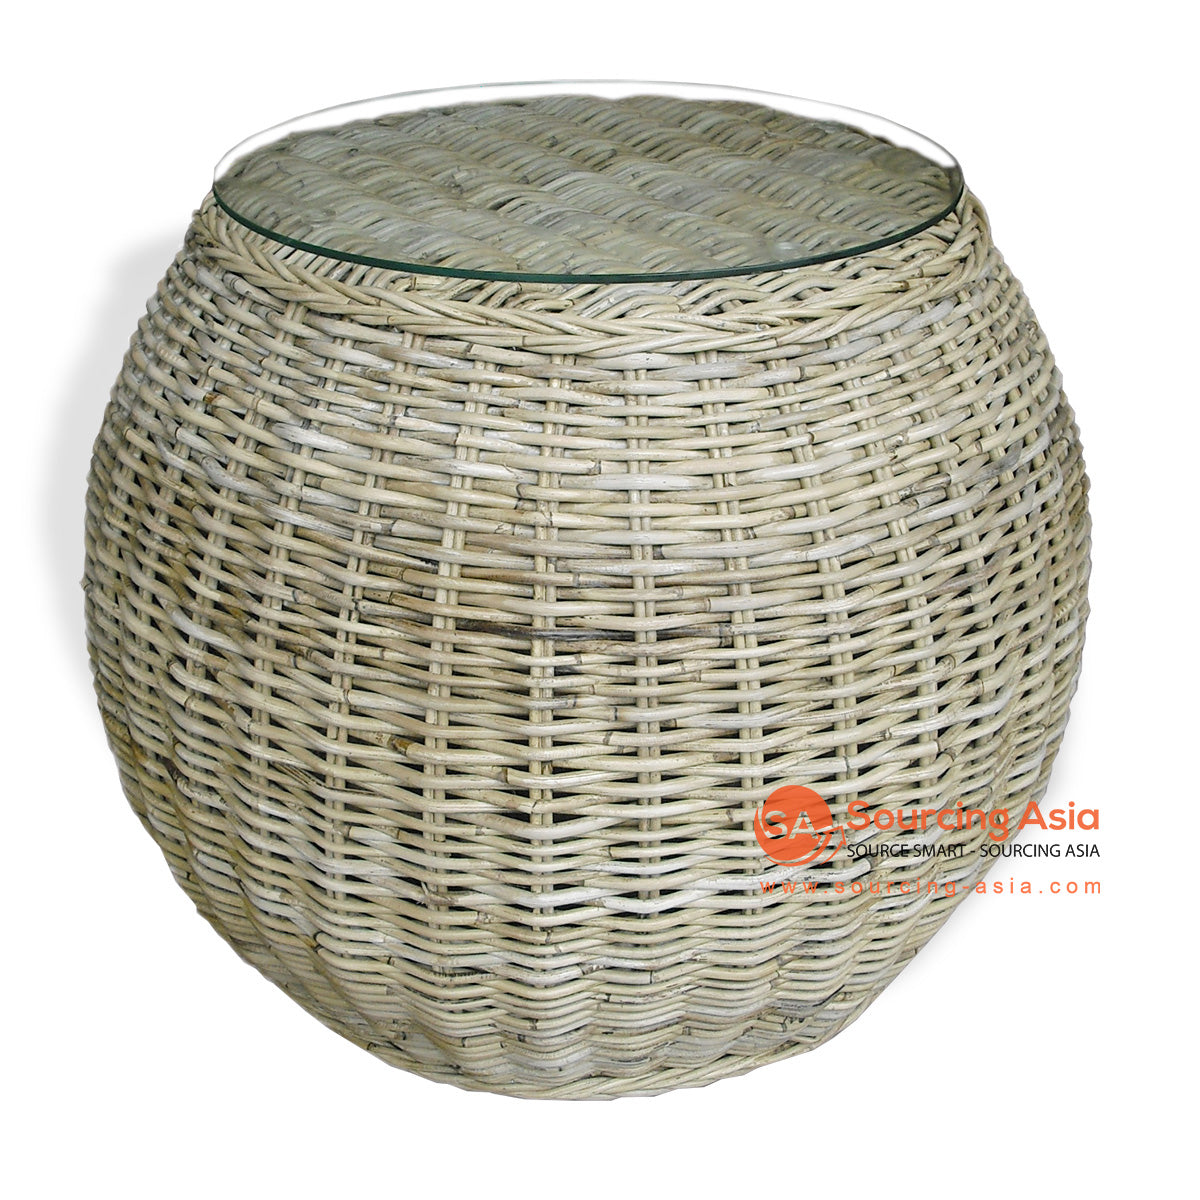 SRF056-KR RATTAN BALL COFFEE TABLE